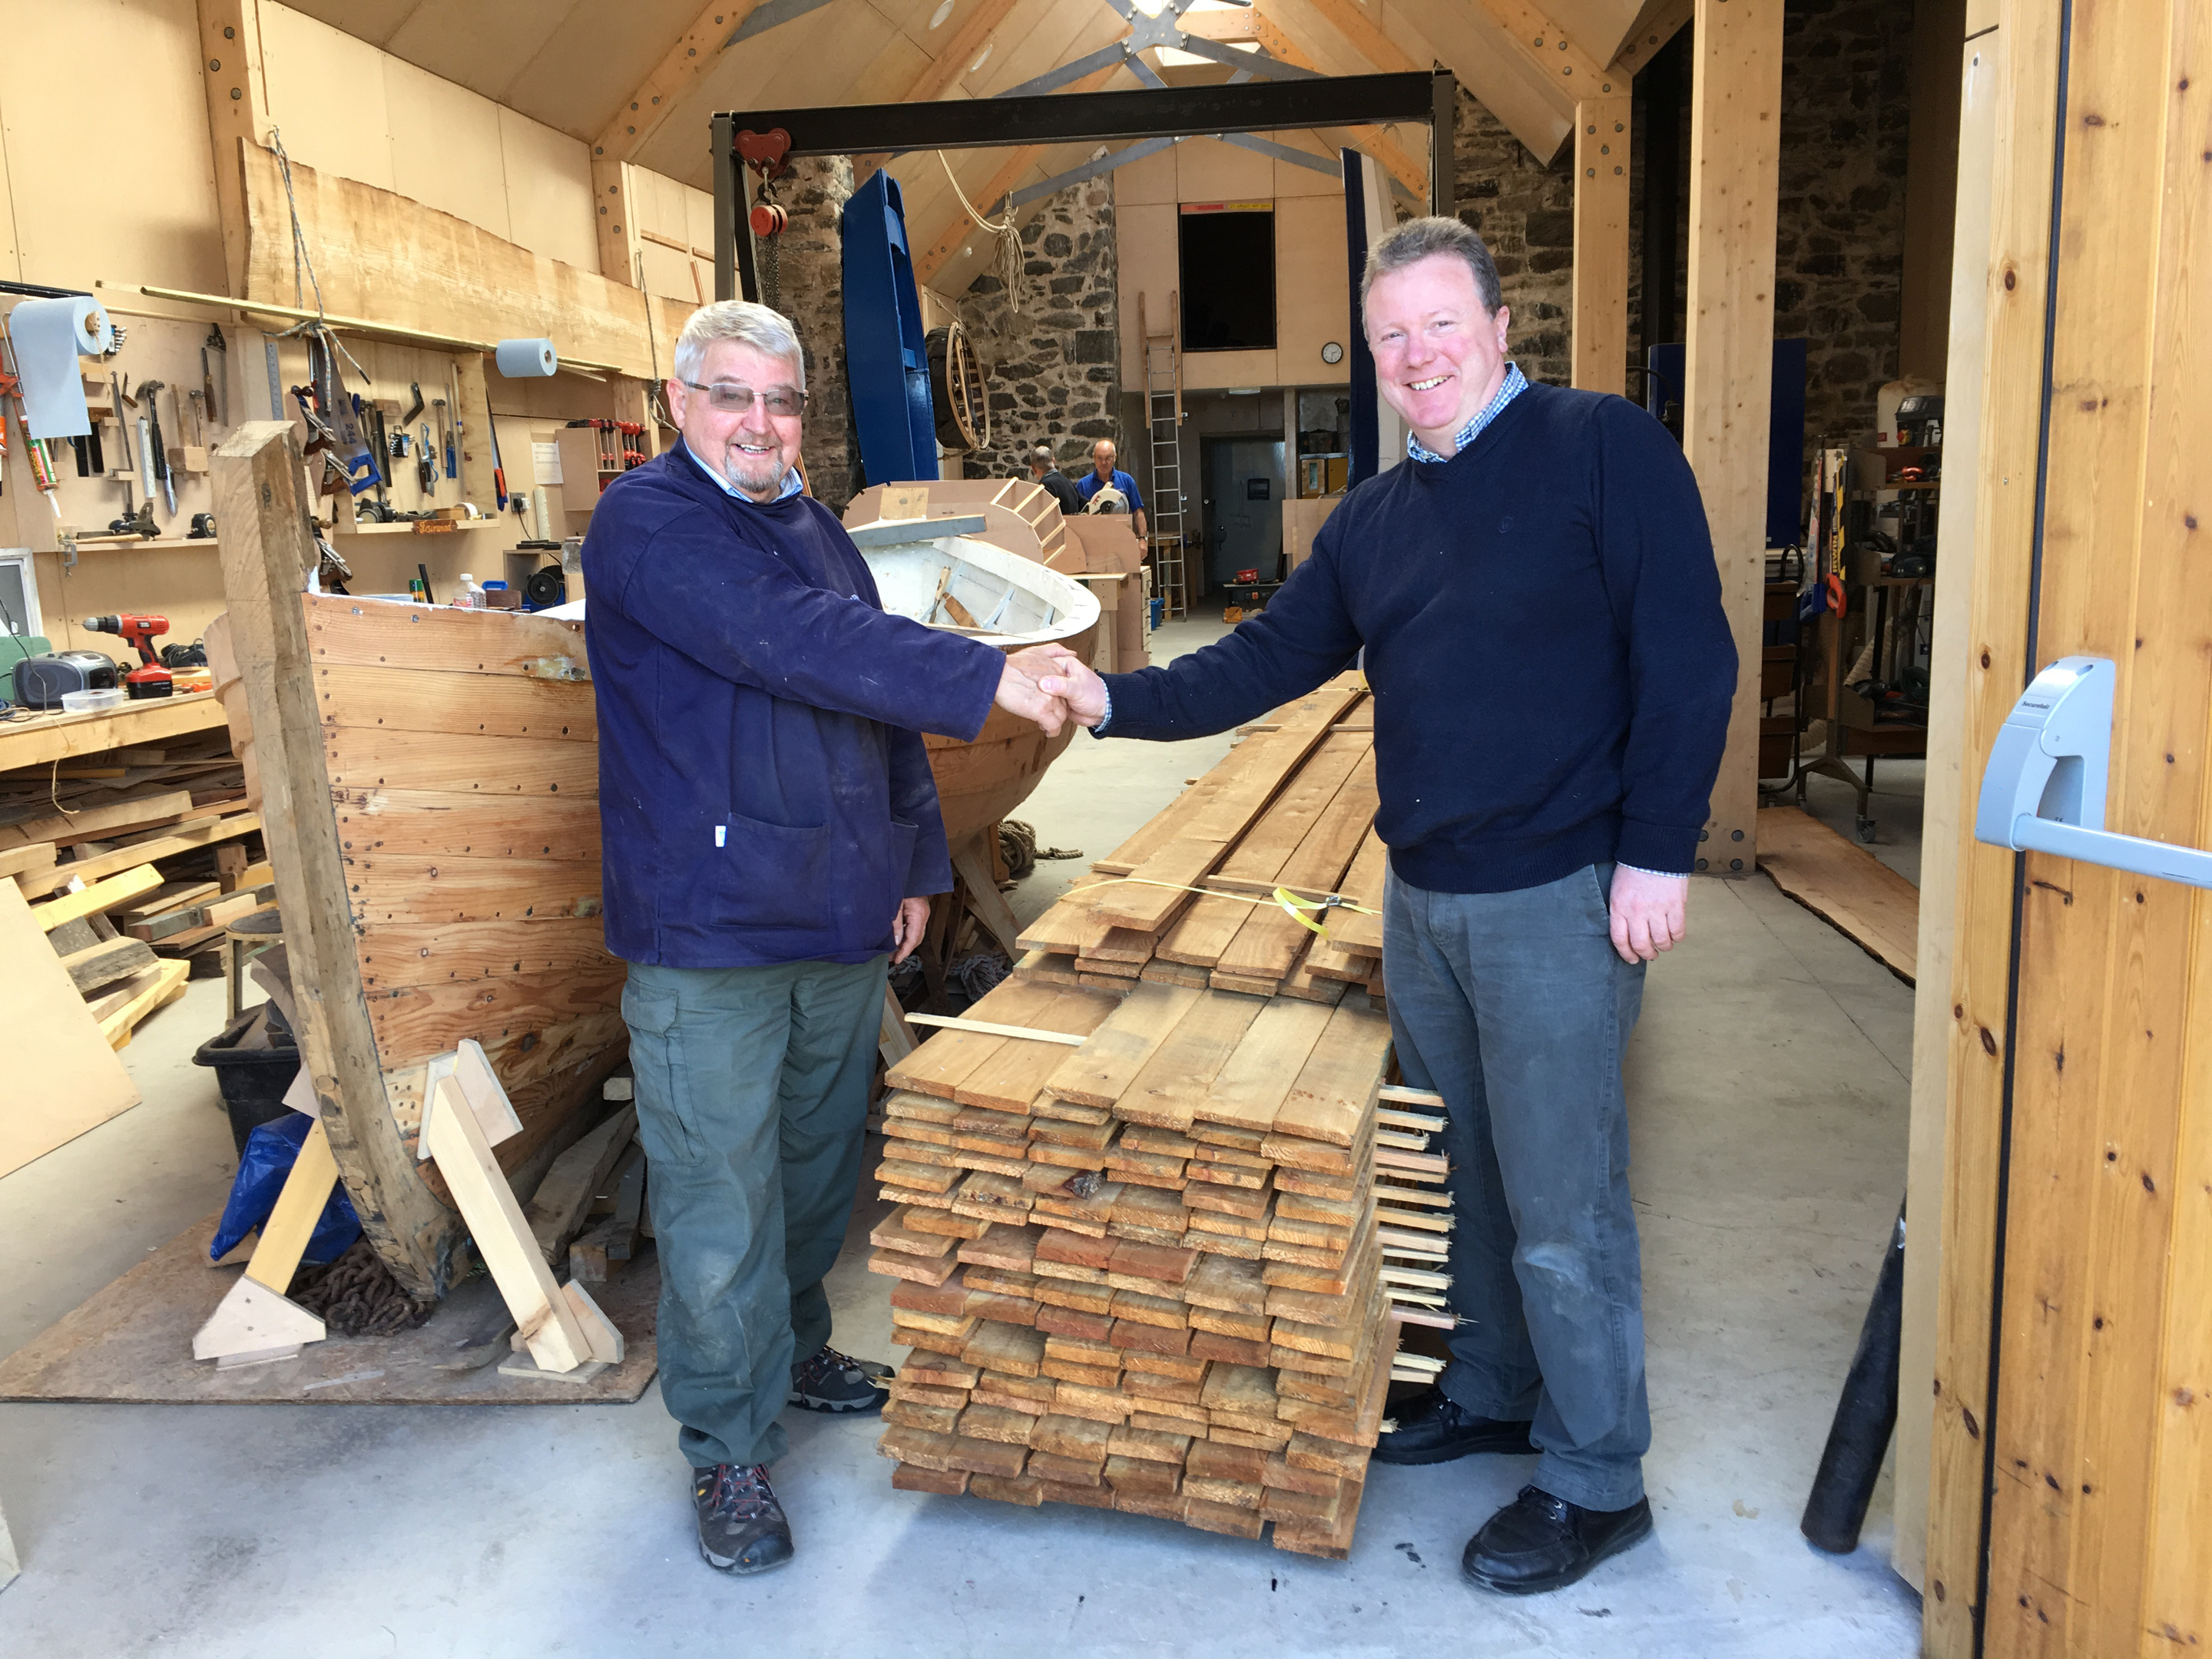 Keith Muir from Portsoy Boat Shed (left) and Michael Bruce (Glen Tanar) who donated the timber